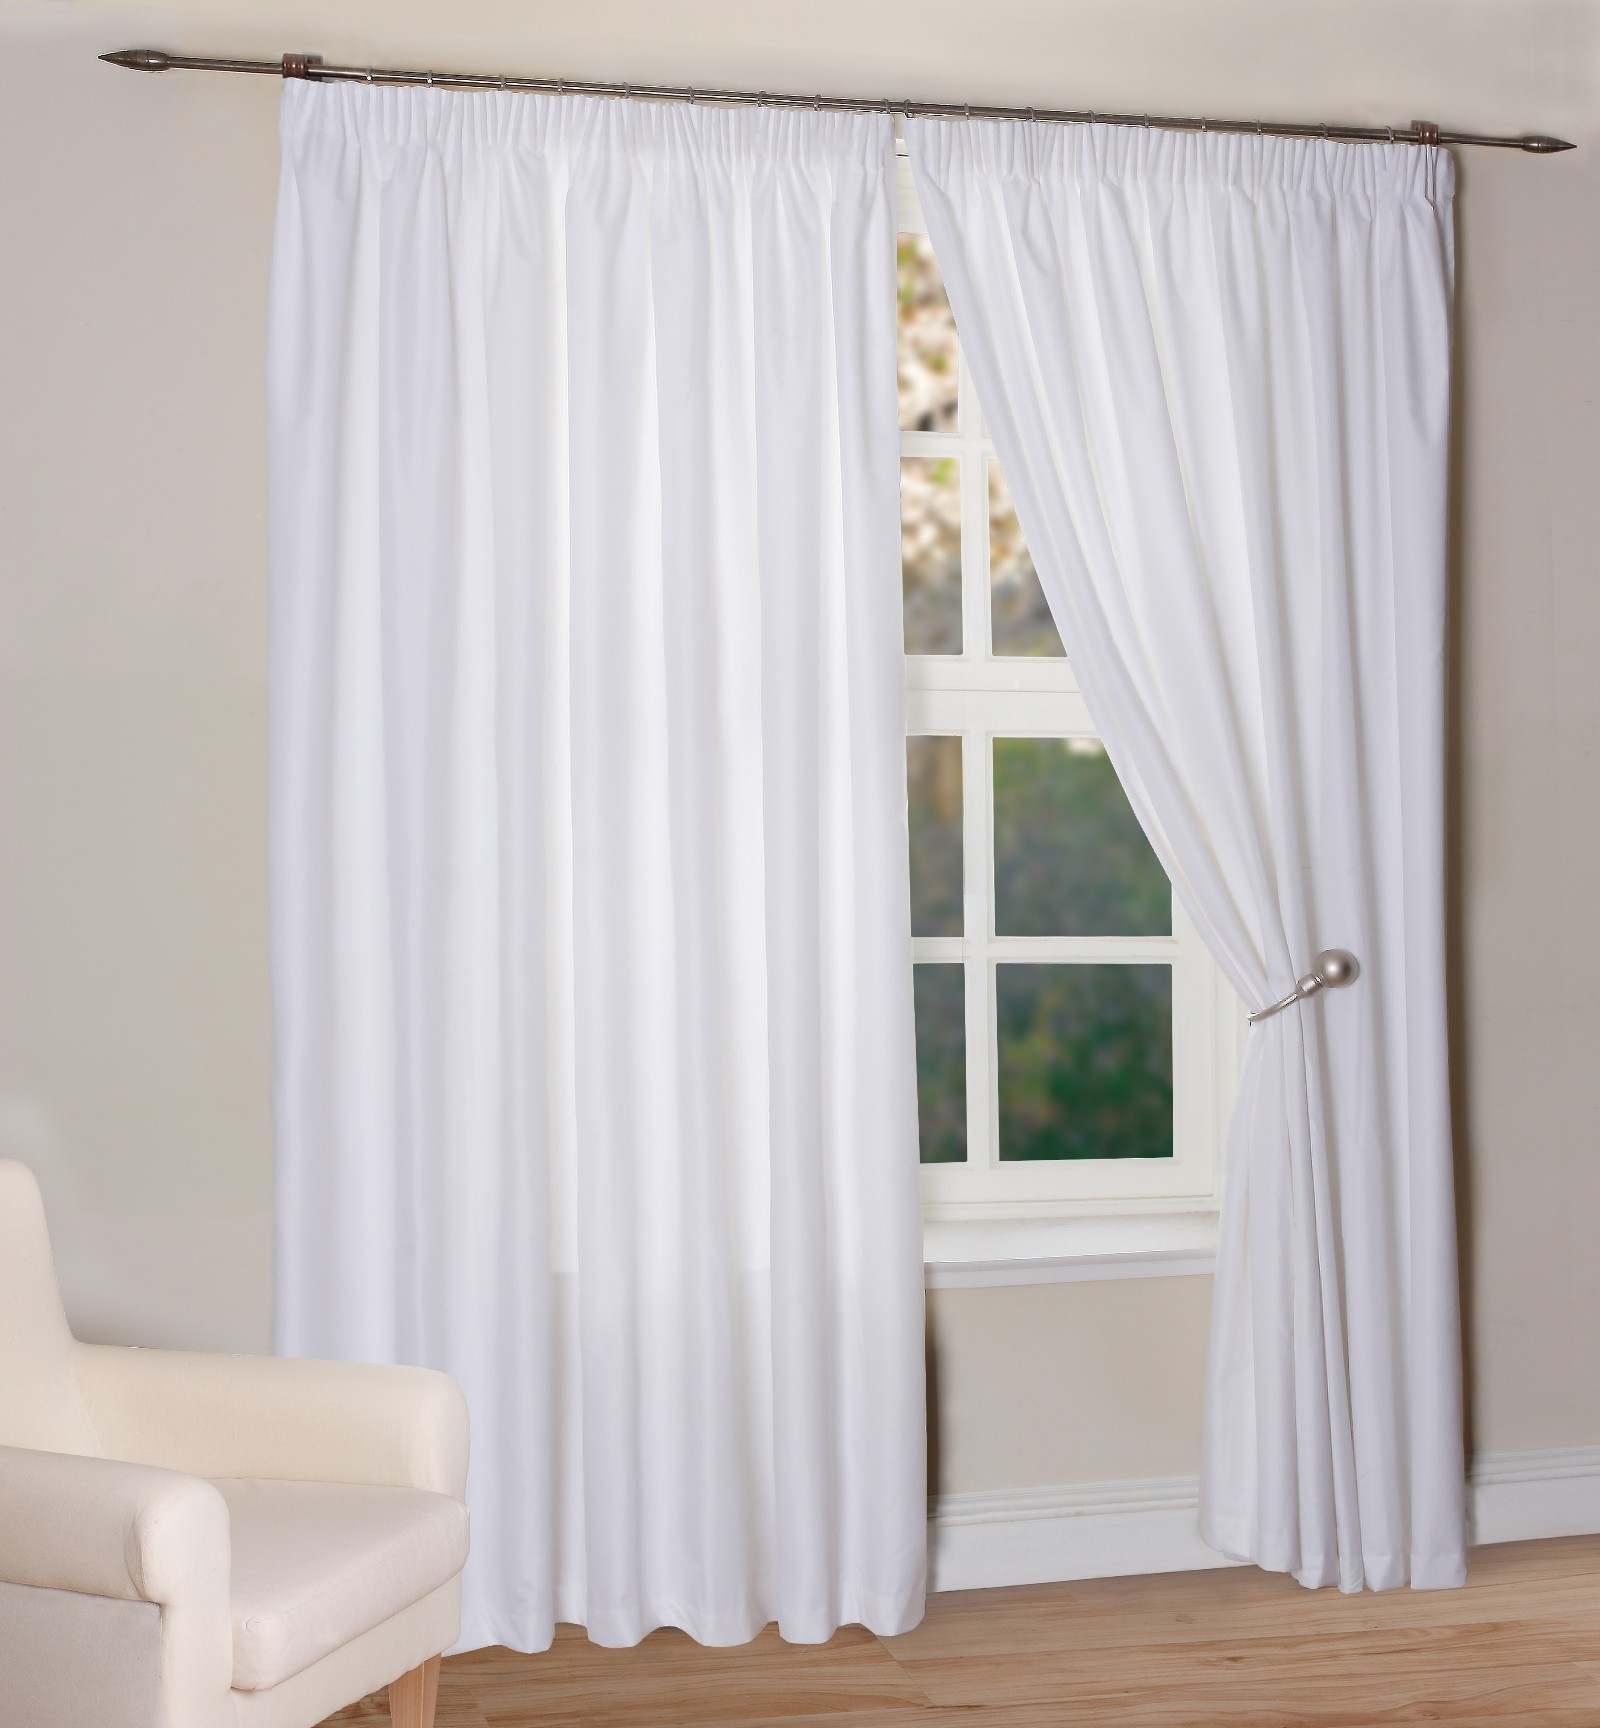 Window Cool Atmosphere With Thermal Curtains Target For Your Home Within Very Cheap Curtains (View 25 of 25)